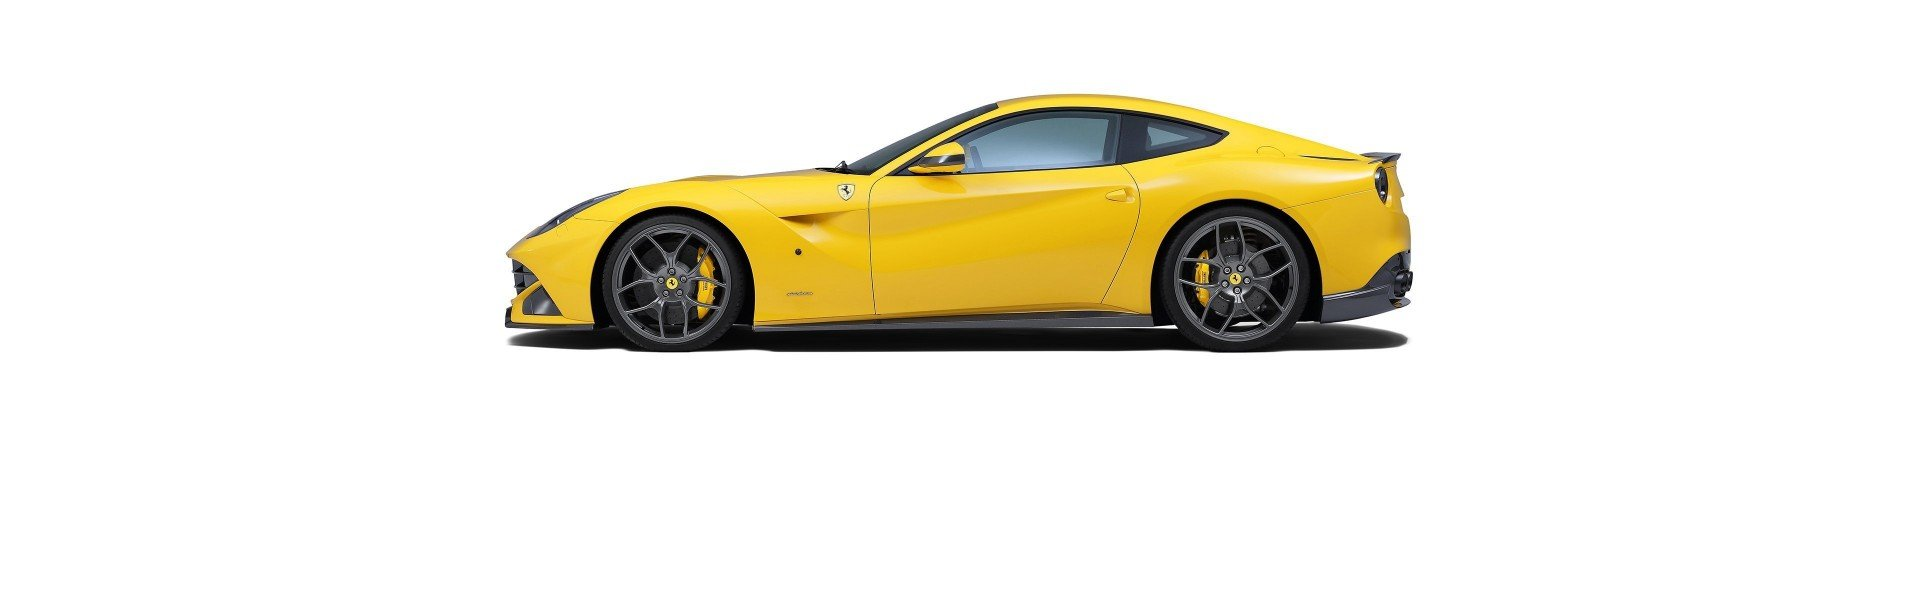 F12 Berlinetta Novitec Performance En Vogue